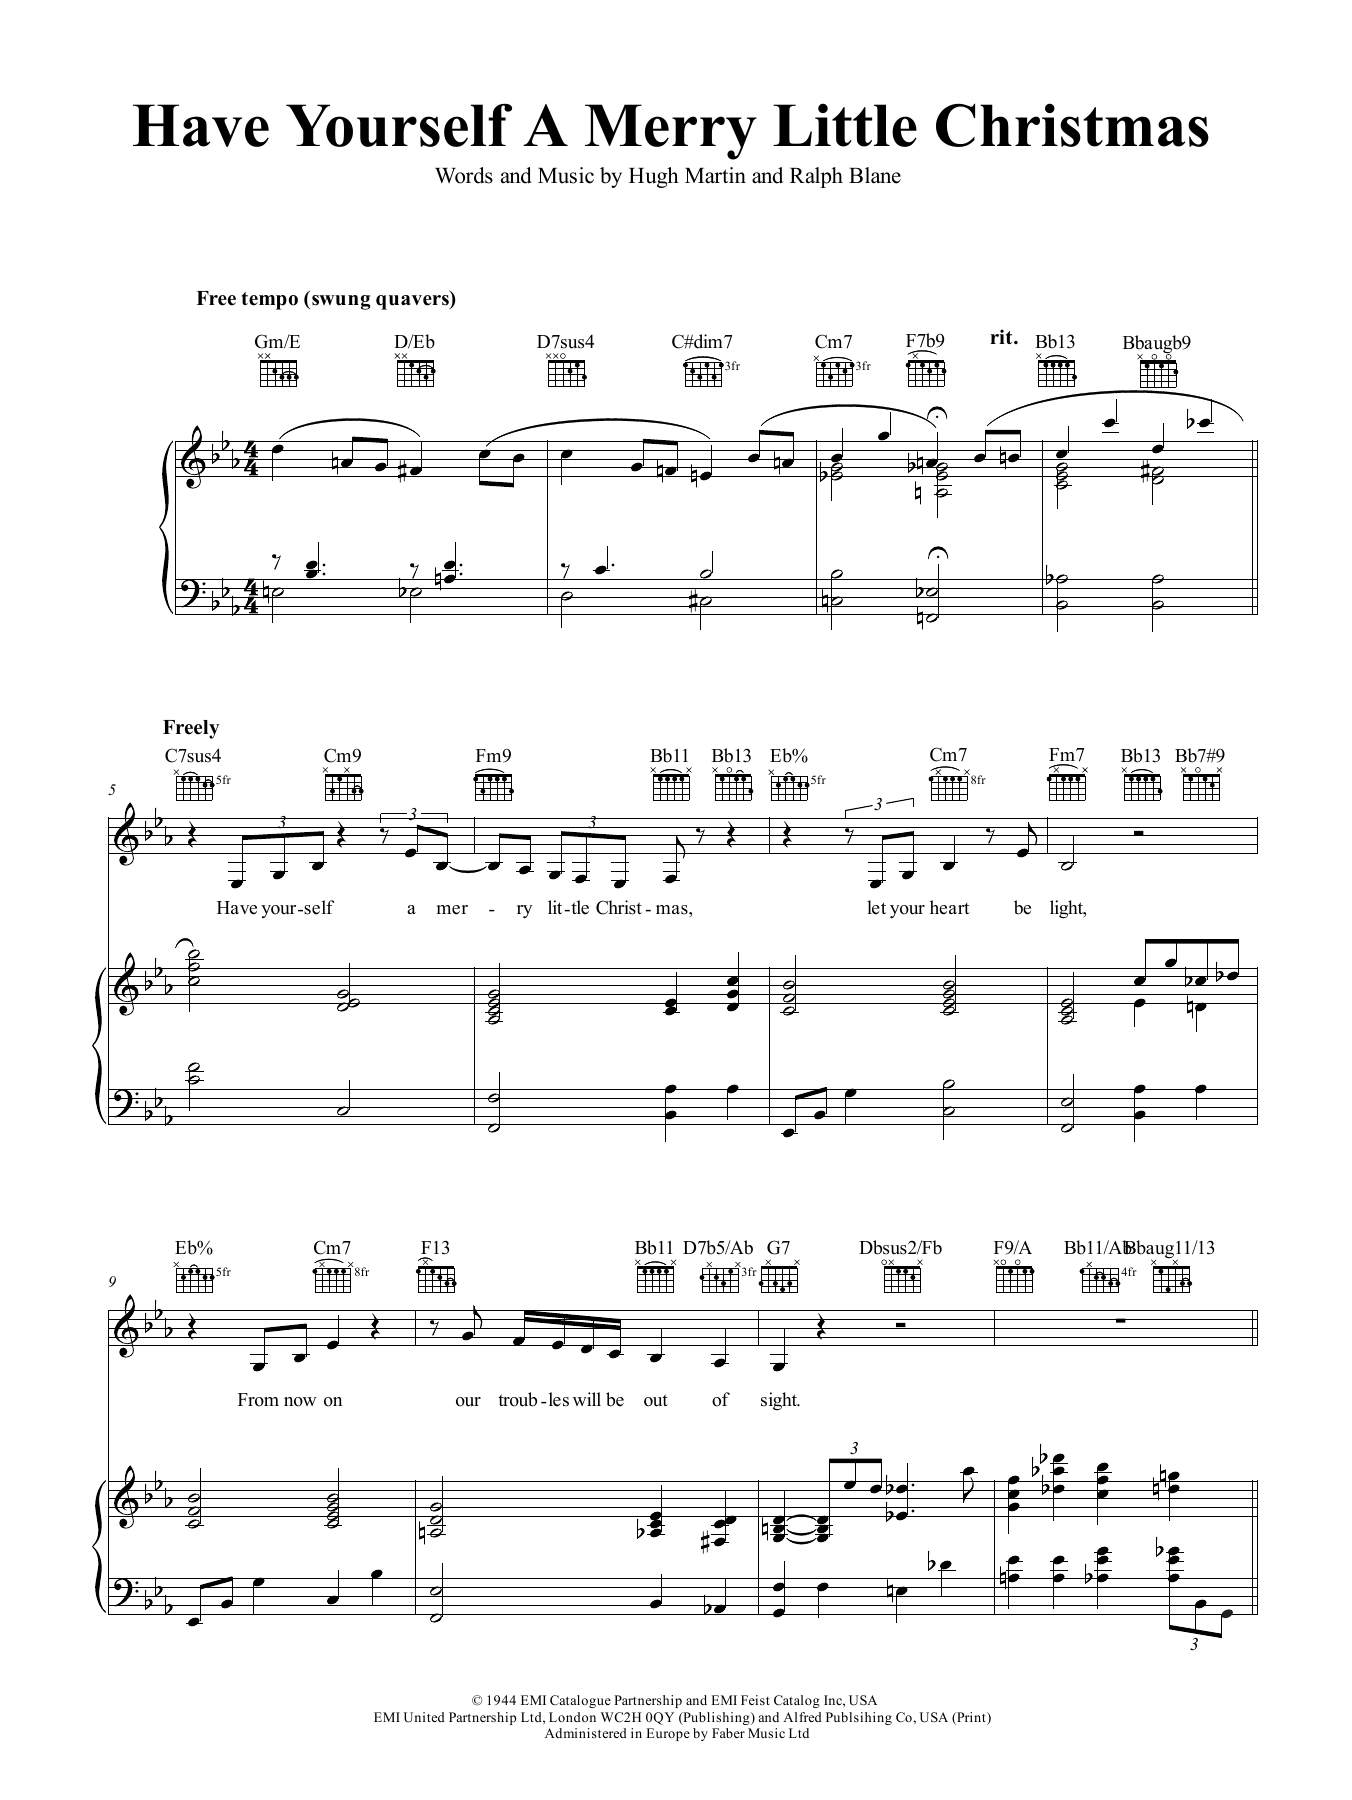 Have Yourself A Merry Little Christmas Chords Have Yourself A Merry Little Christmas Frank Sinatra Piano Vocal Guitar Right Hand Melody Digital Sheet Music